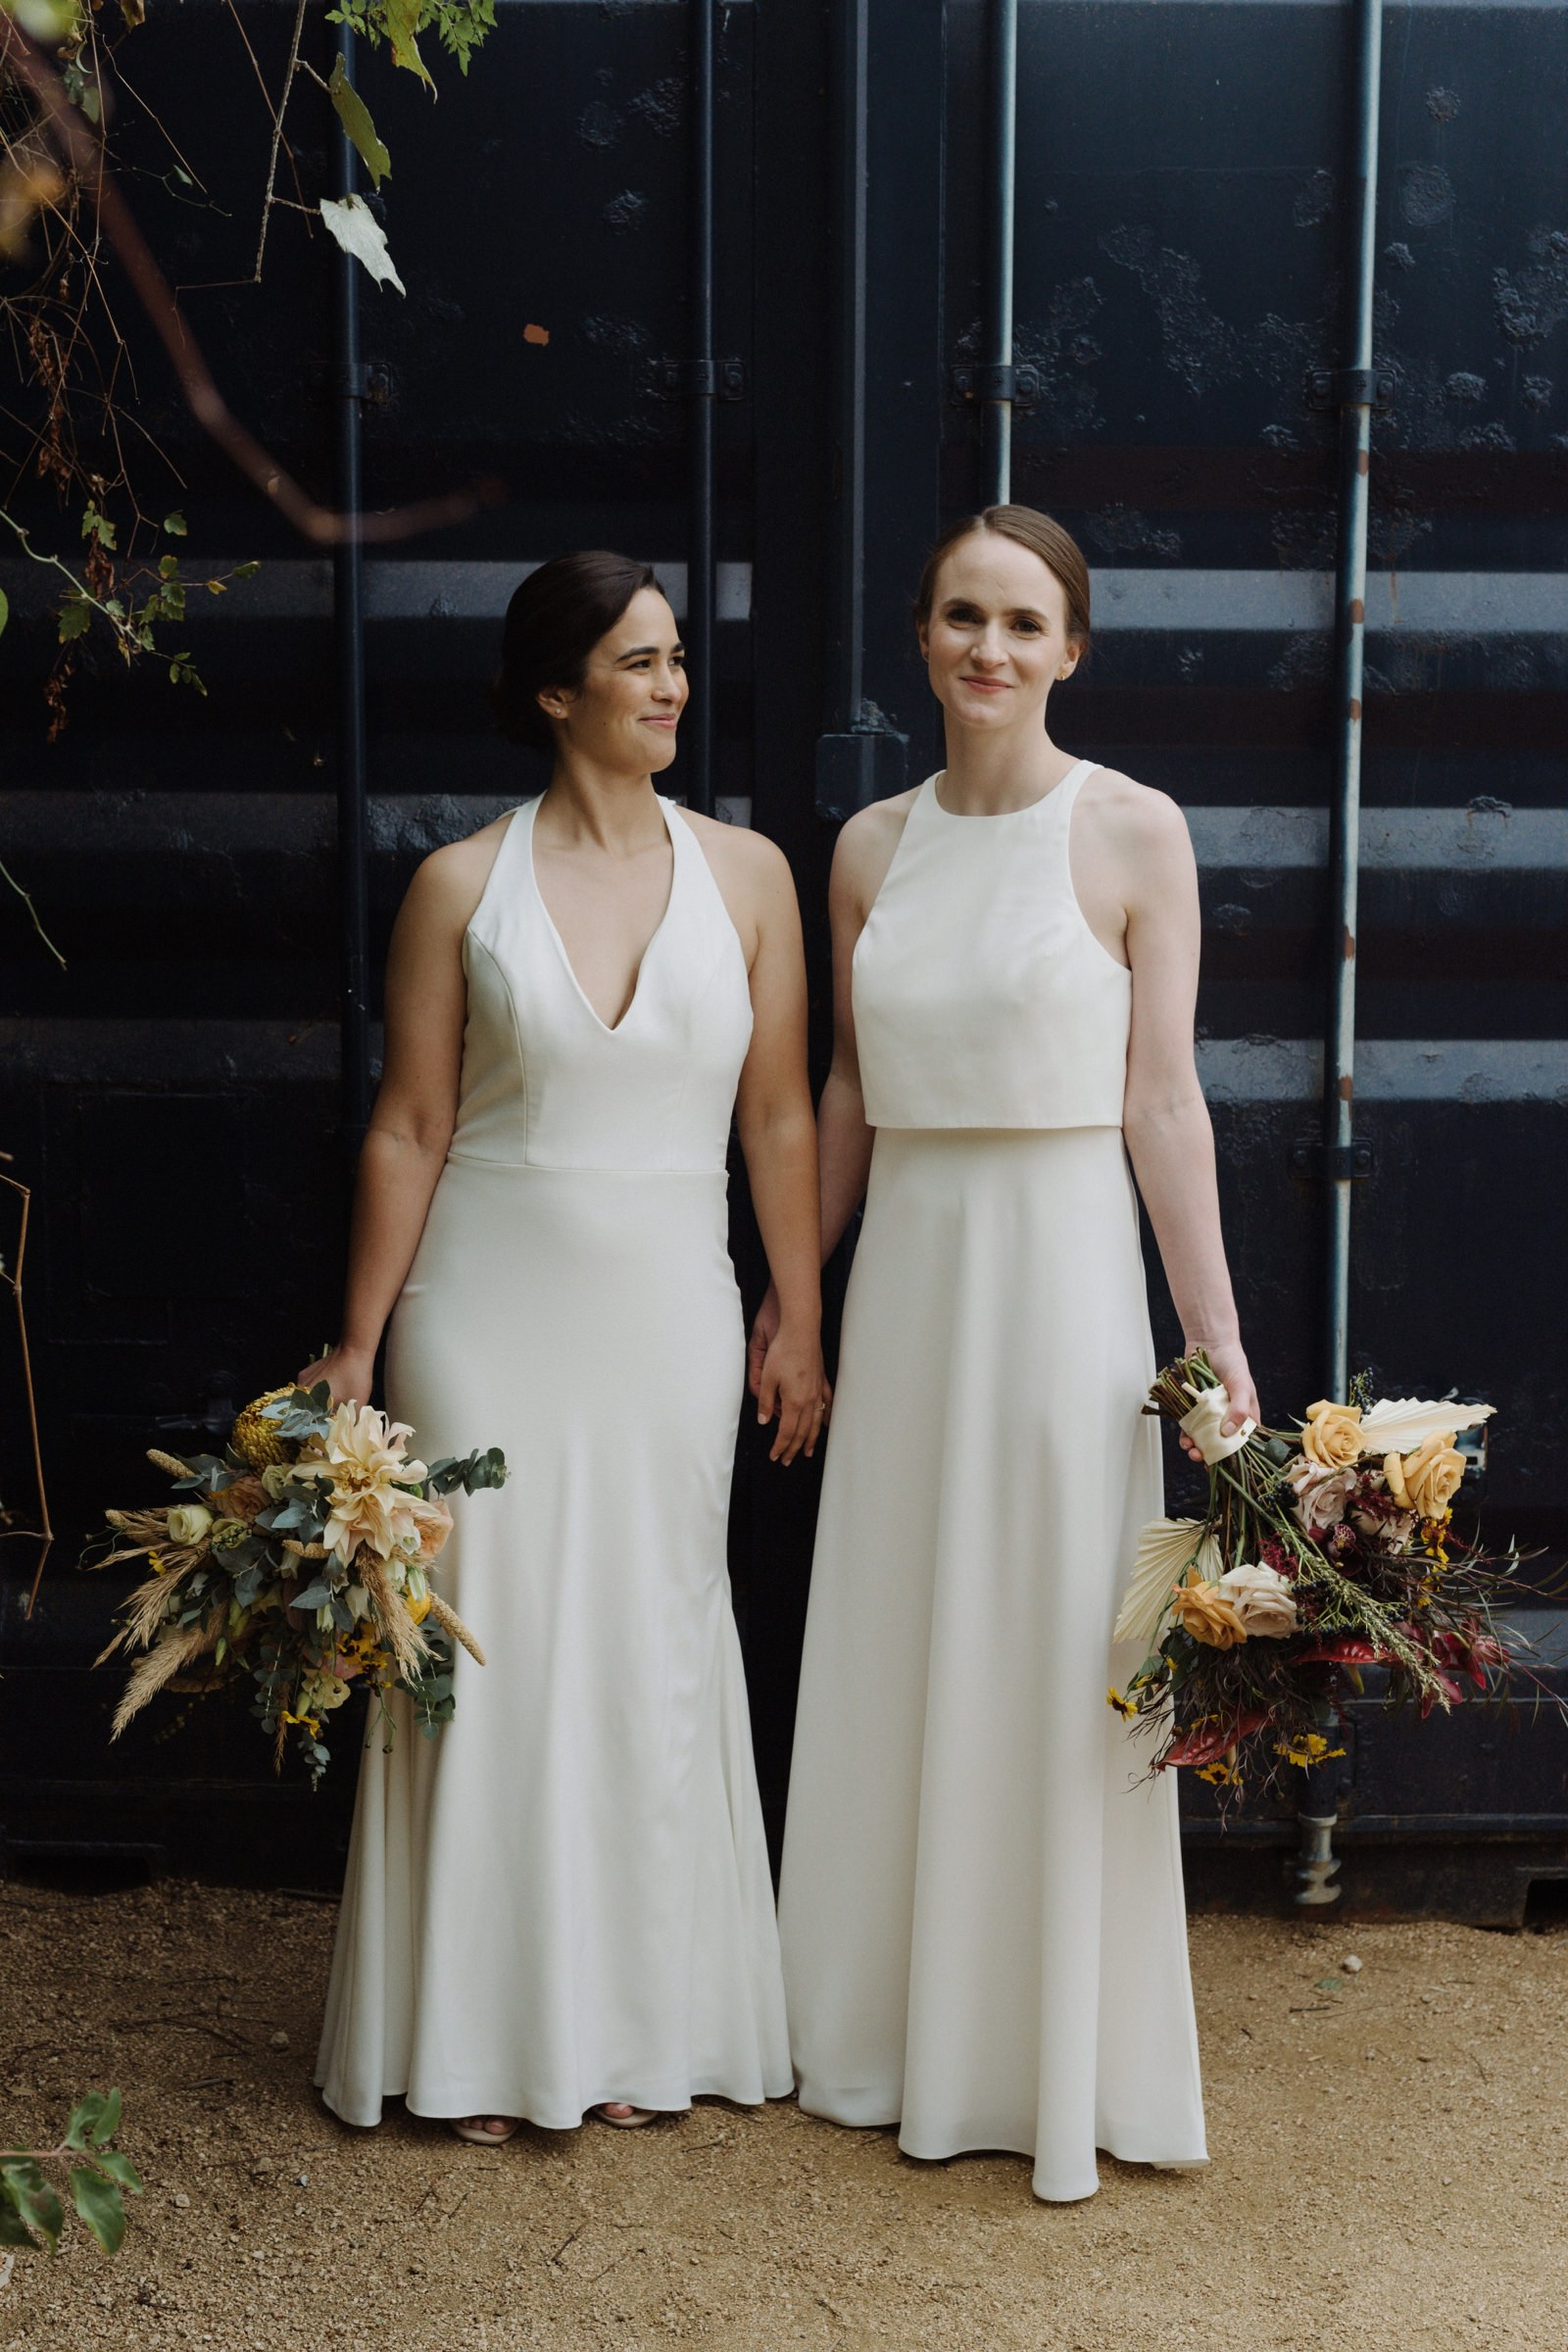 Complimentary bride style for a lesbian wedding at Springdale Station in East Austin